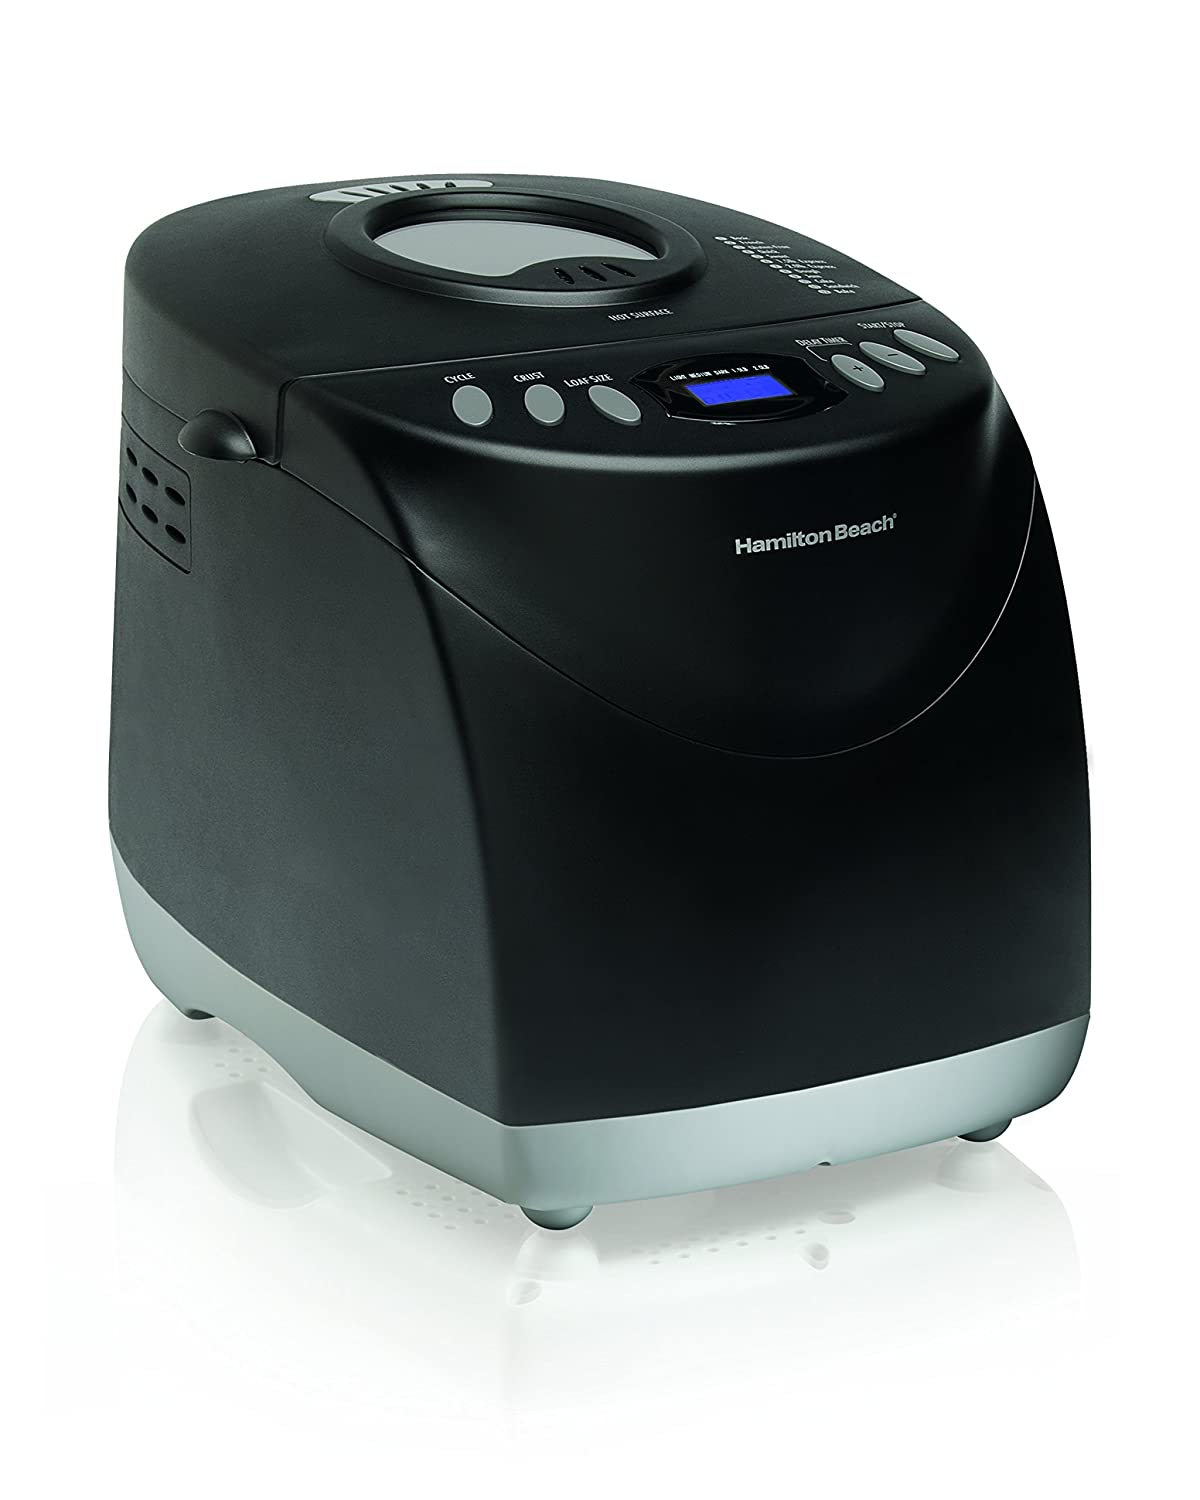 #2 rated in quiet: Hamilton Beach HomeBaker 2 Lb. Bread Maker Machine, scored 94/100